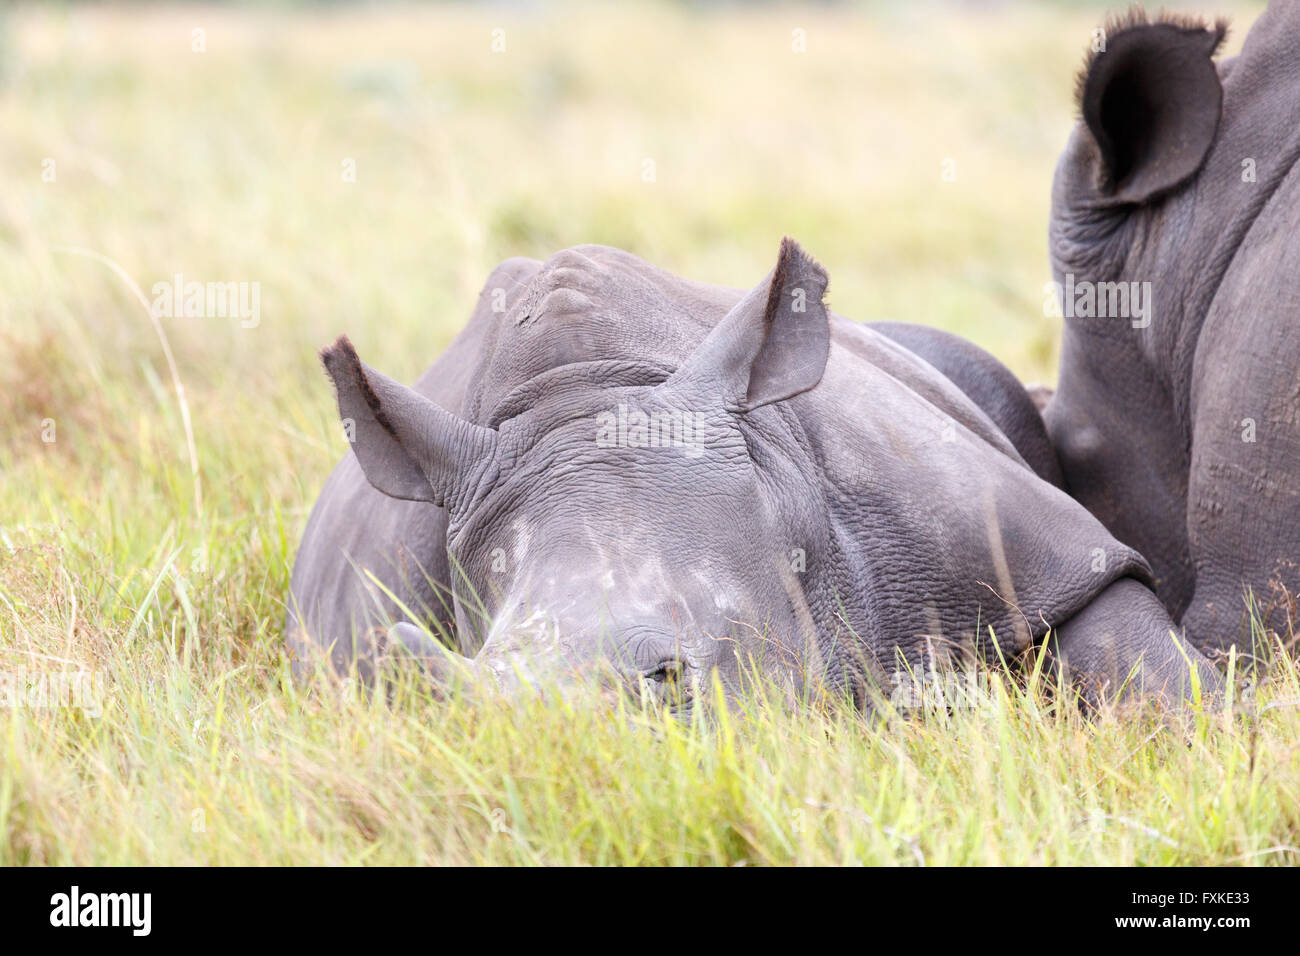 A rhinoceros, often abbreviated to rhino, is one of any five extant species of odd-toed ungulates in the family - Stock Image